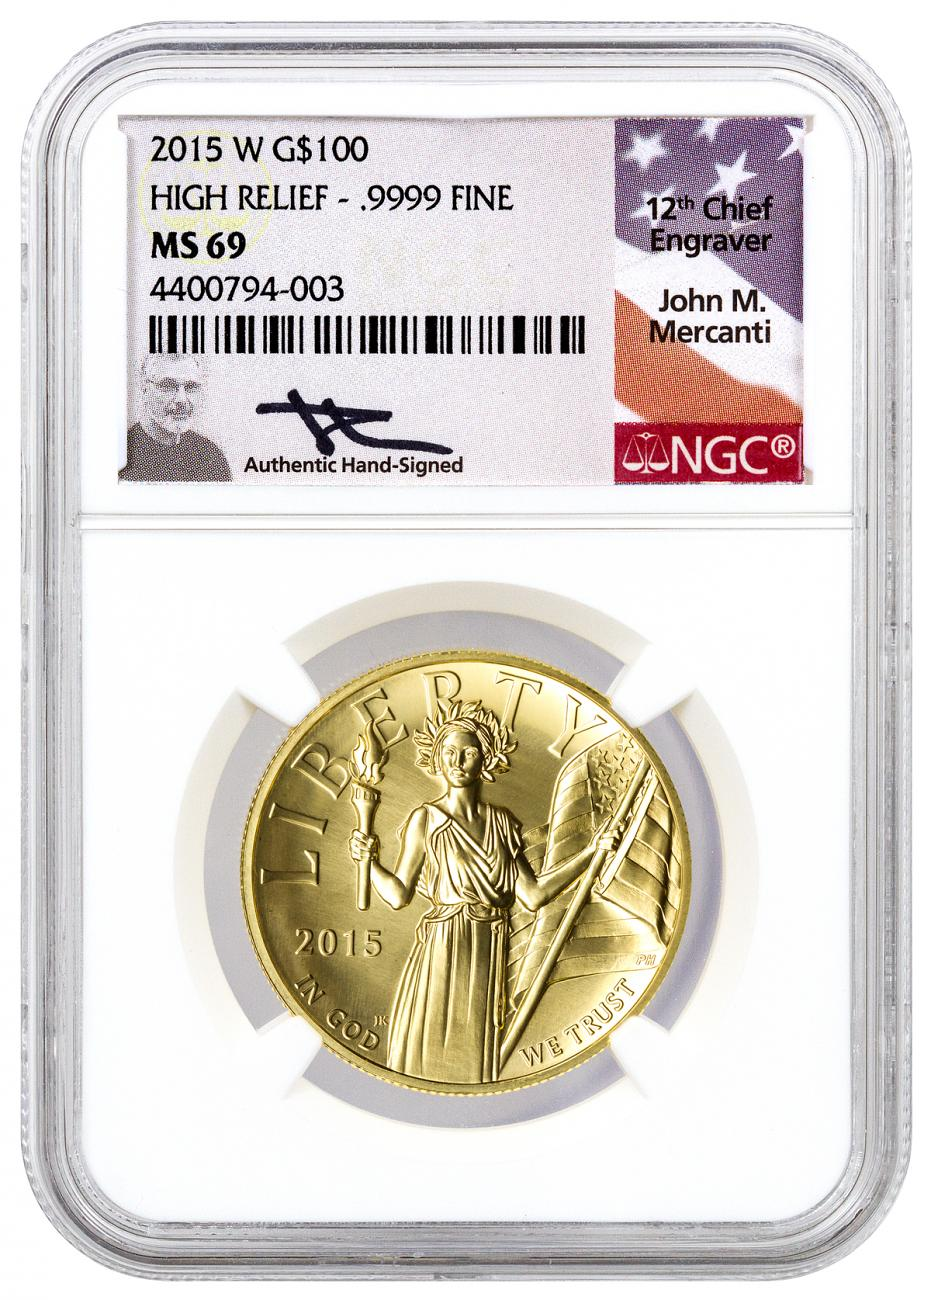 2015-W $100 1 oz. High Relief Gold American Liberty - NGC MS69 (Mercanti Signed Label)